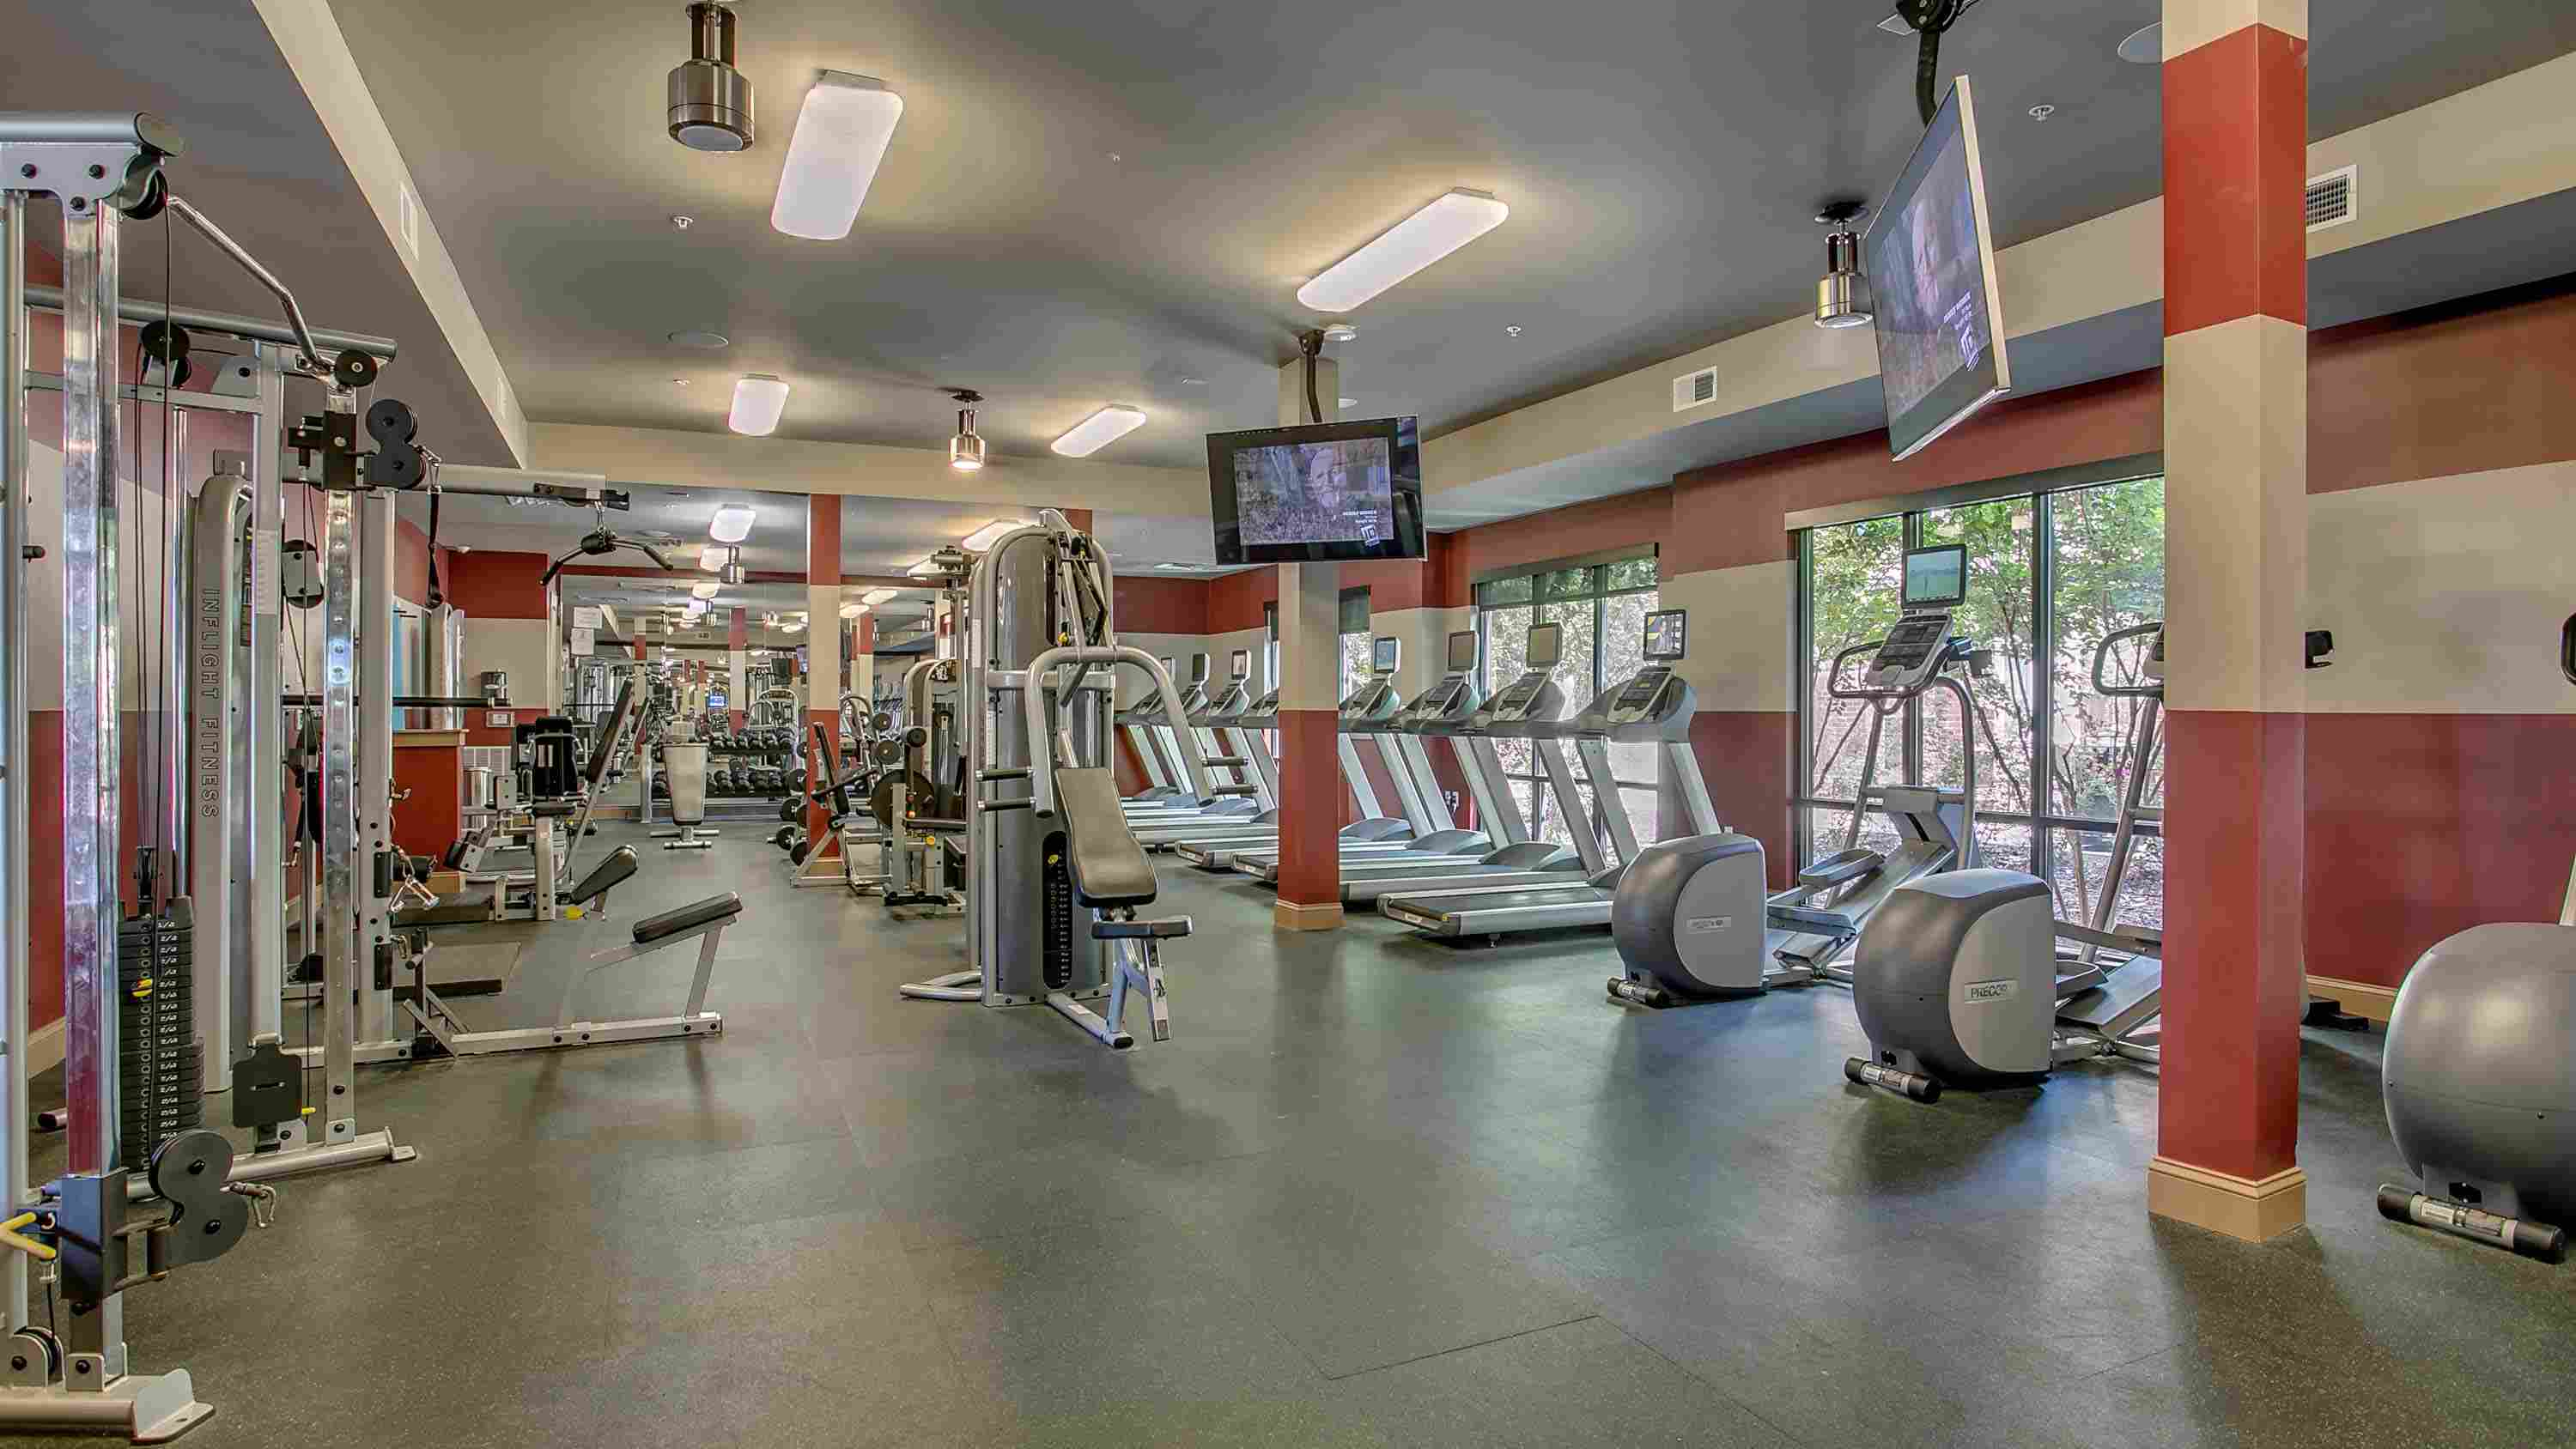 The-Lofts-At-City-Center-Tuscaloosa-AL-Workout-Room-2-Unilodgers